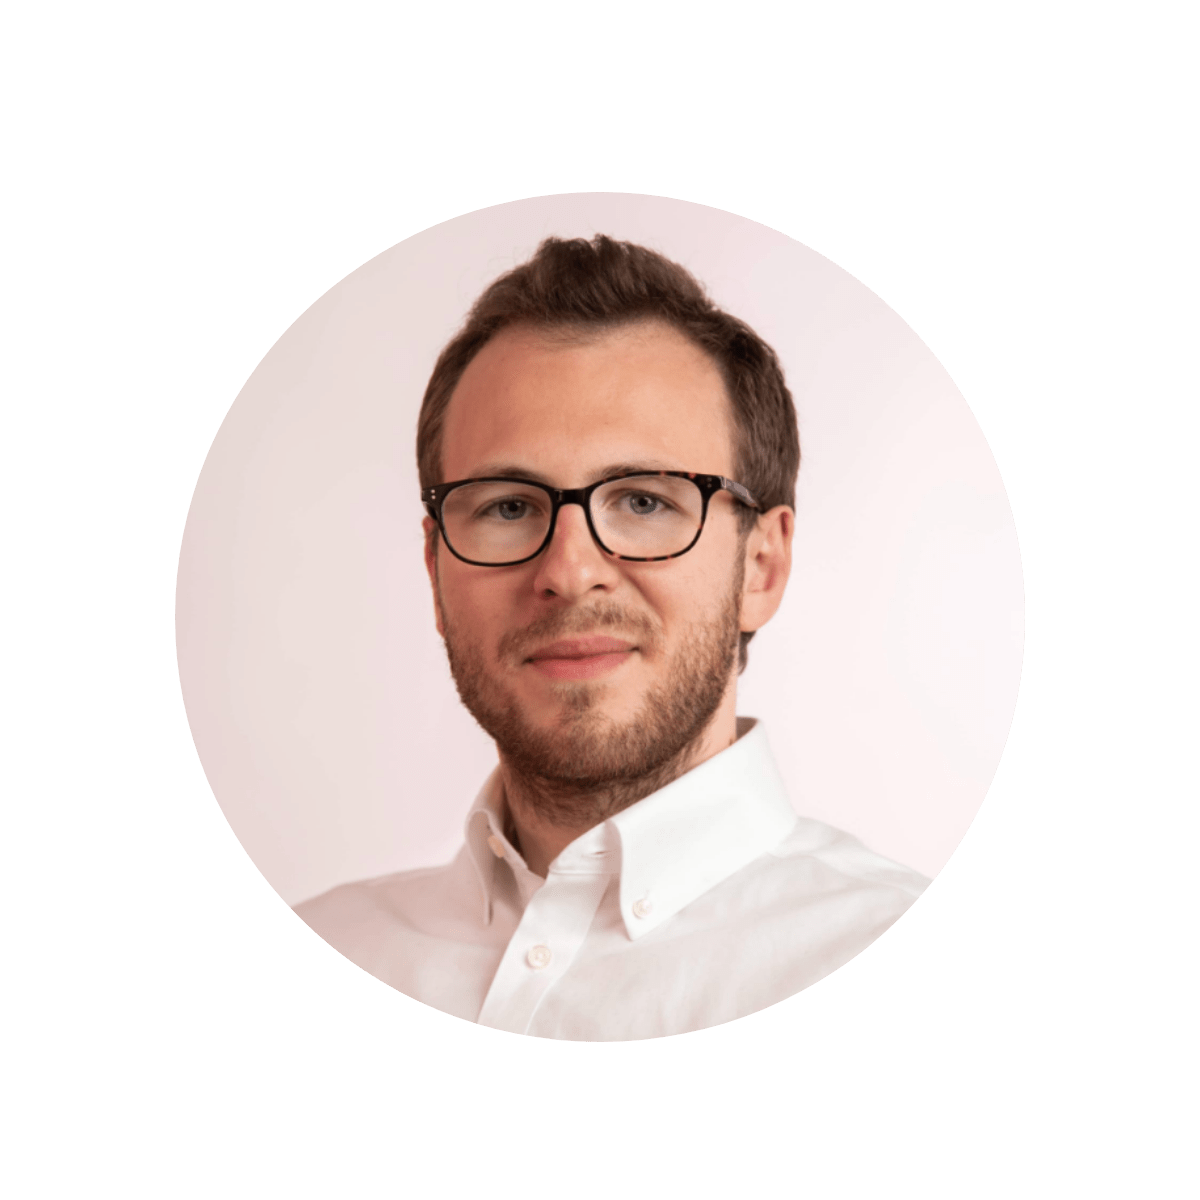 Louis - Adsets.io